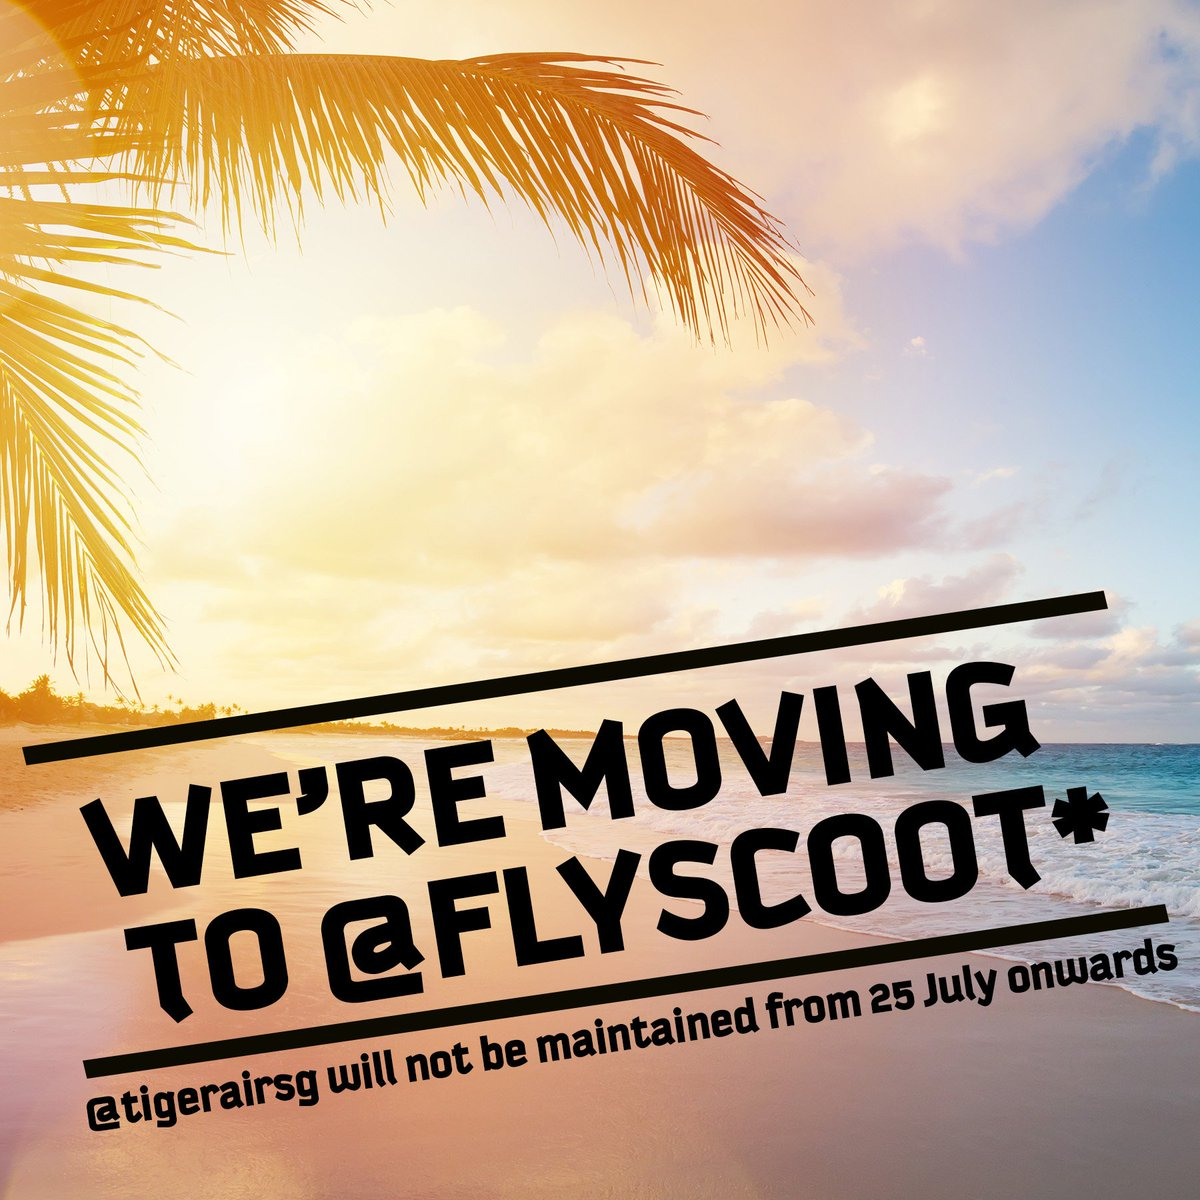 Join us over @FlyScoot! ✈️ @TigerairSG will not be actively maintained from 25 July onwards, but the fun continues @FlyScoot! https://t.co/3vW4W2N9JJ